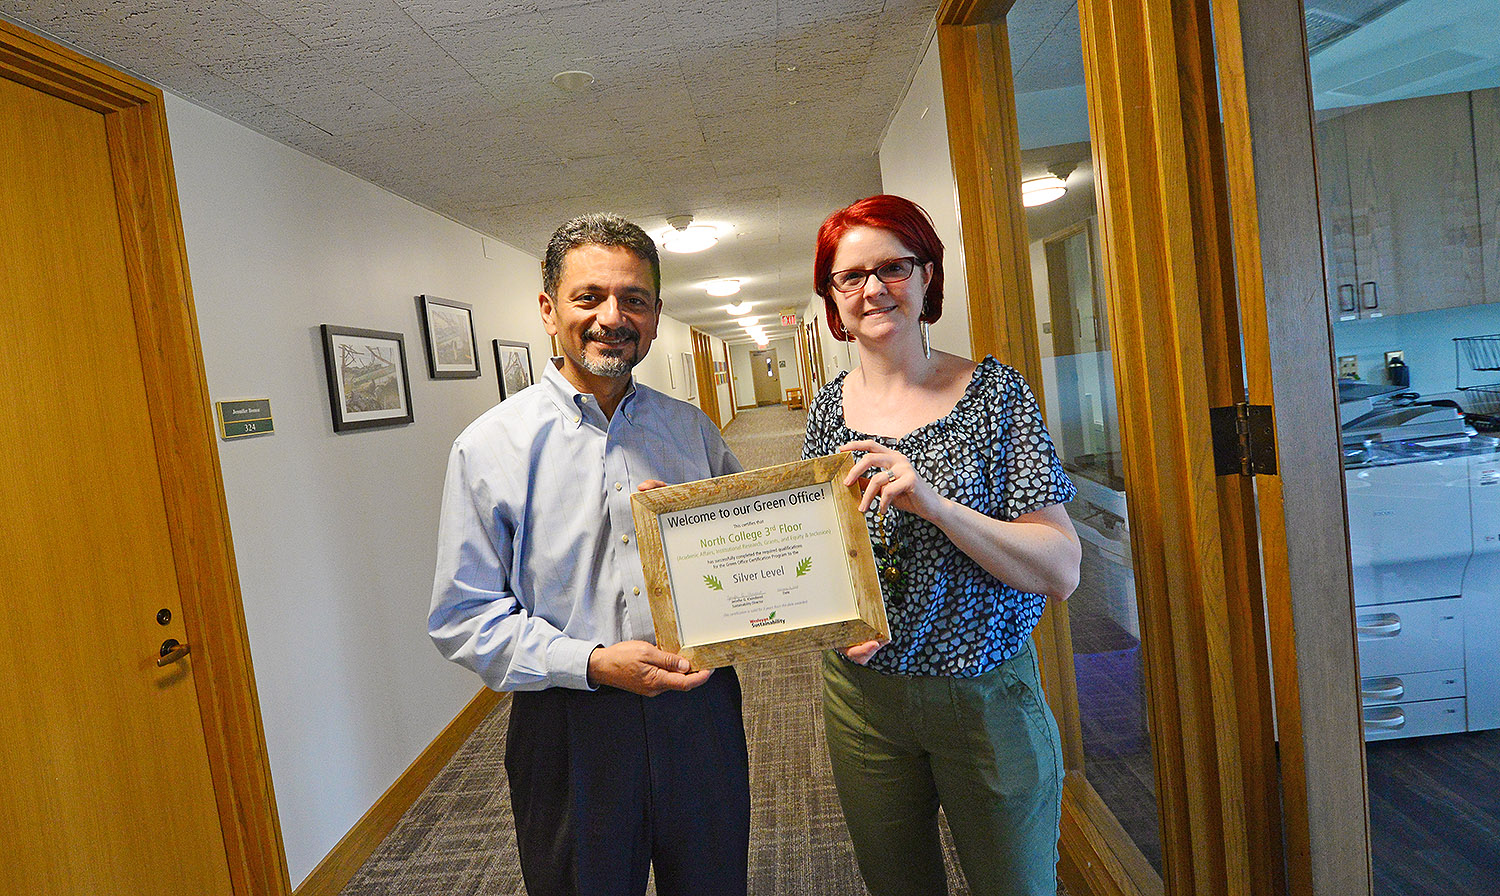 Antonio Farias, vice president for equity and inclusion, and Megan Flagg, executive assistant to the provost and vice president for academic affairs, proudly display their Green Office Certification on the third floor of North College. The third floor is the first space on campus to be Green Office Certified by the Sustainability Office.